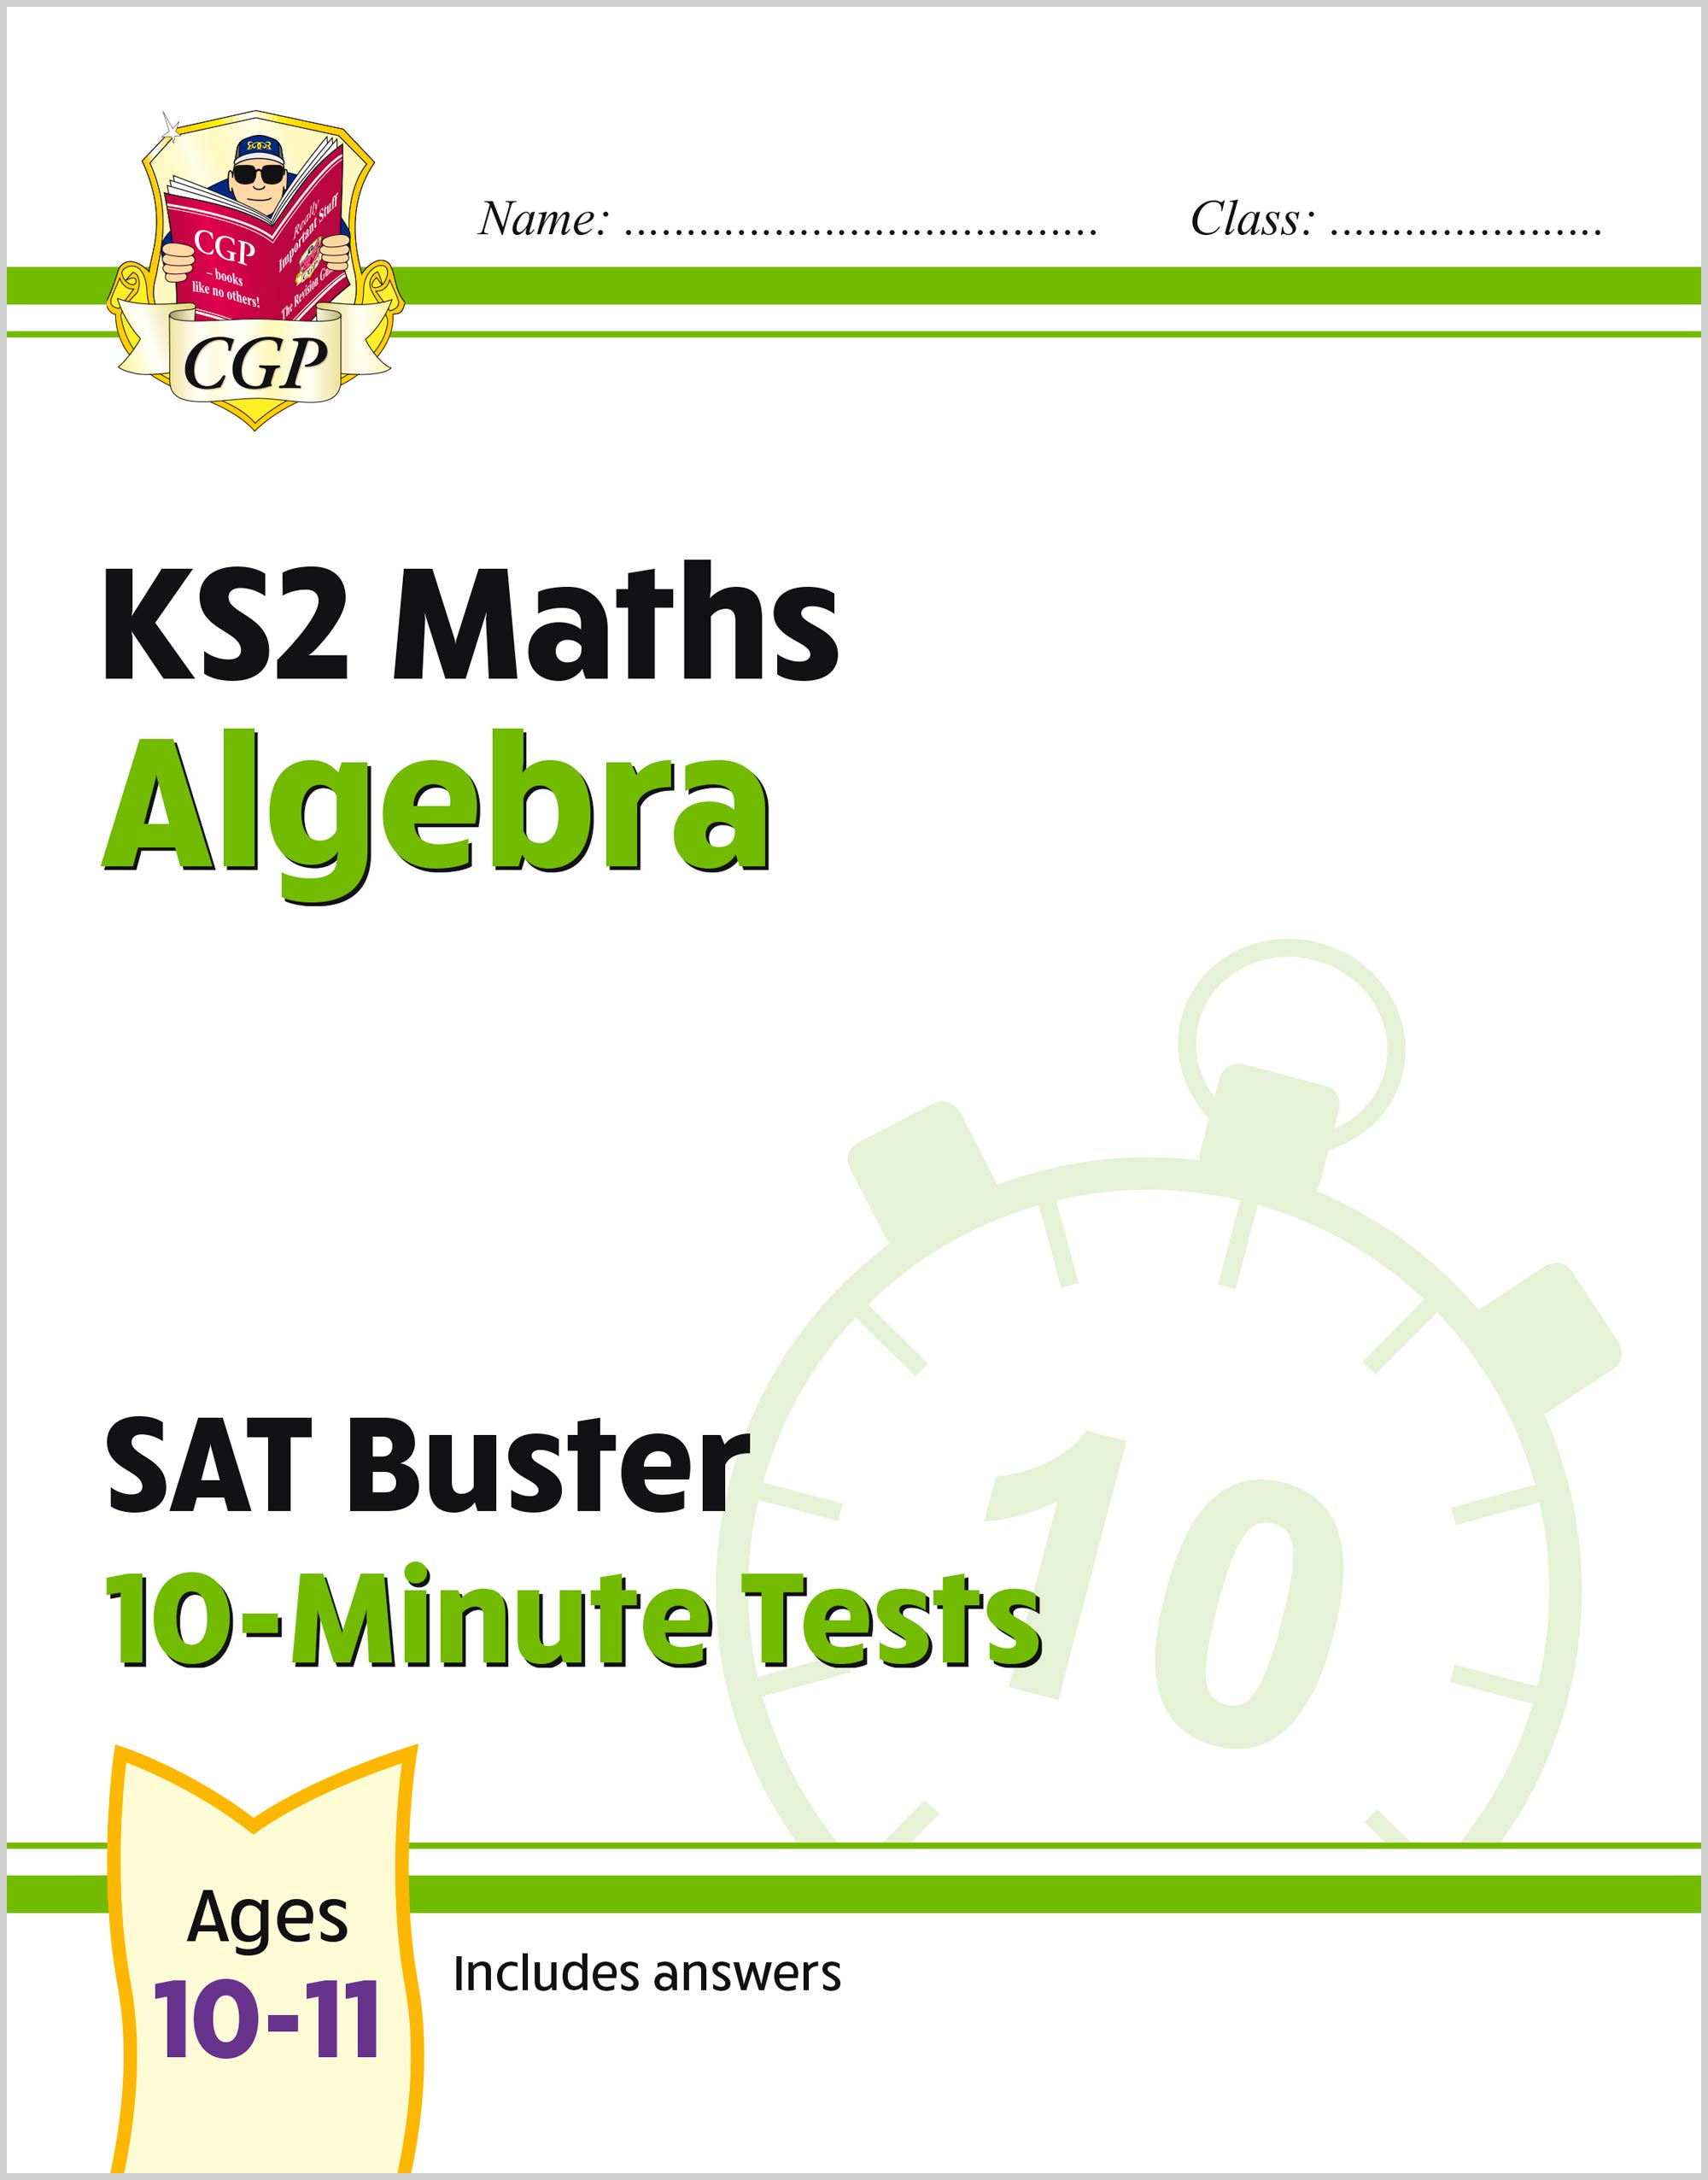 MAXP21 - New KS2 Maths SAT Buster 10-Minute Tests - Algebra